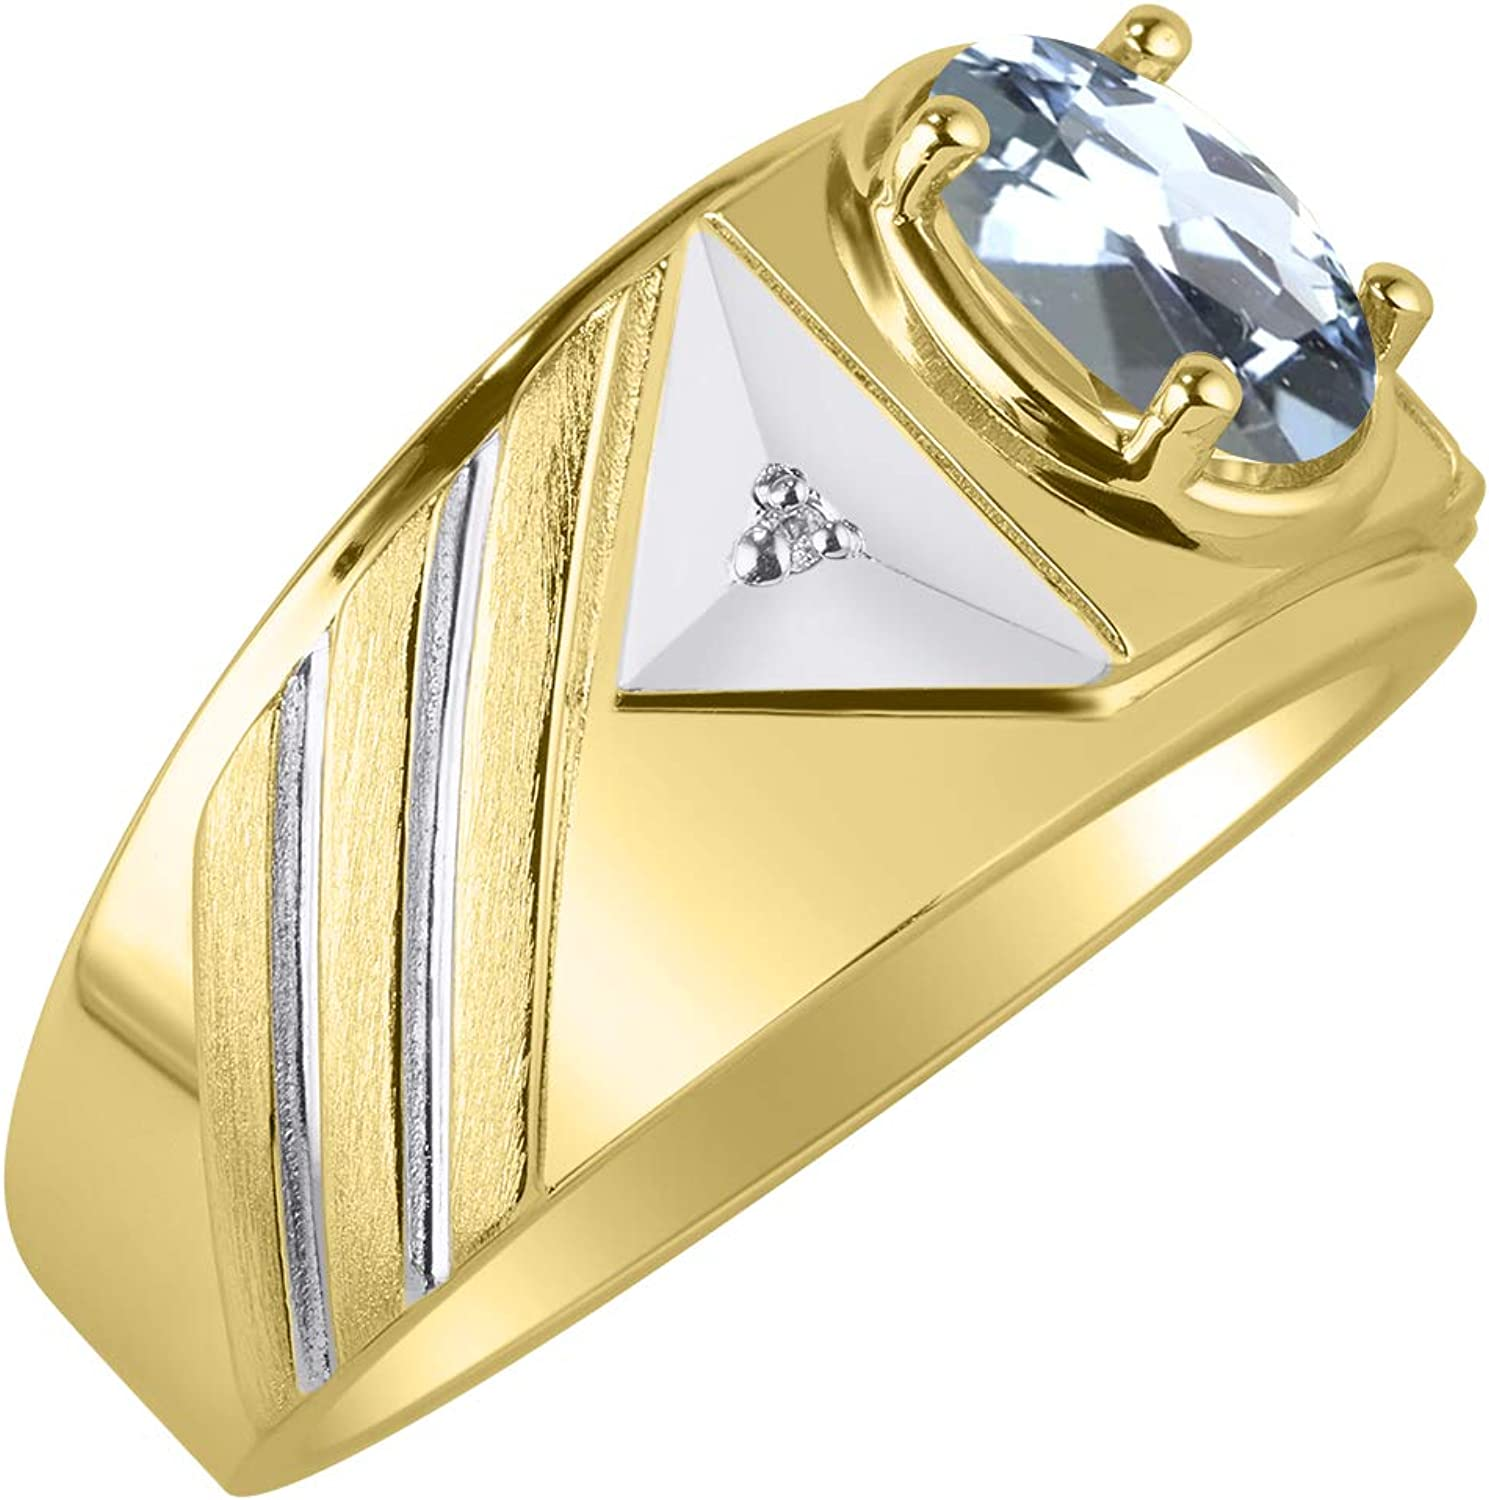 RYLOS Mens Ring with Oval Shape Gemstone /& Genuine Sparkling Diamonds in 14K Yellow Gold Plated Silver .925-8X6MM Color Stone Birthstone